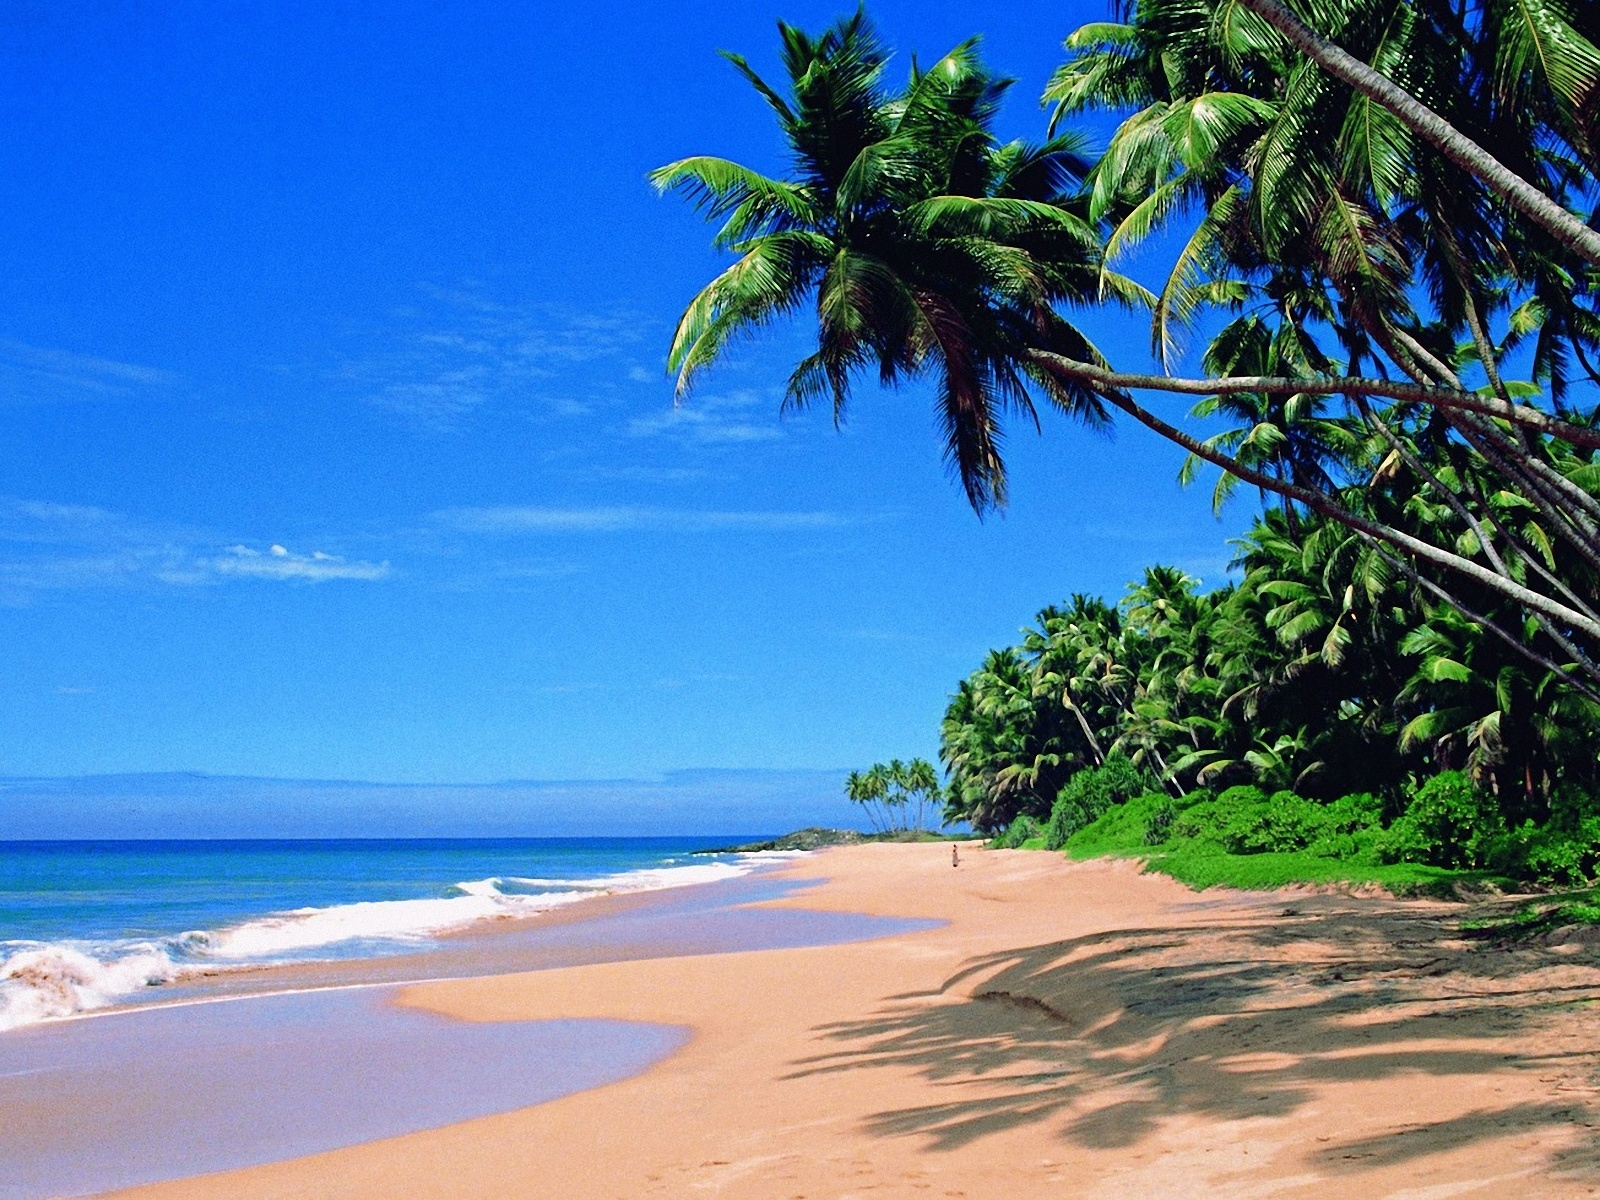 Most Beautiful Beaches 1600x1200 WallpapersGoa 1600x1200 Wallpapers 1600x1200